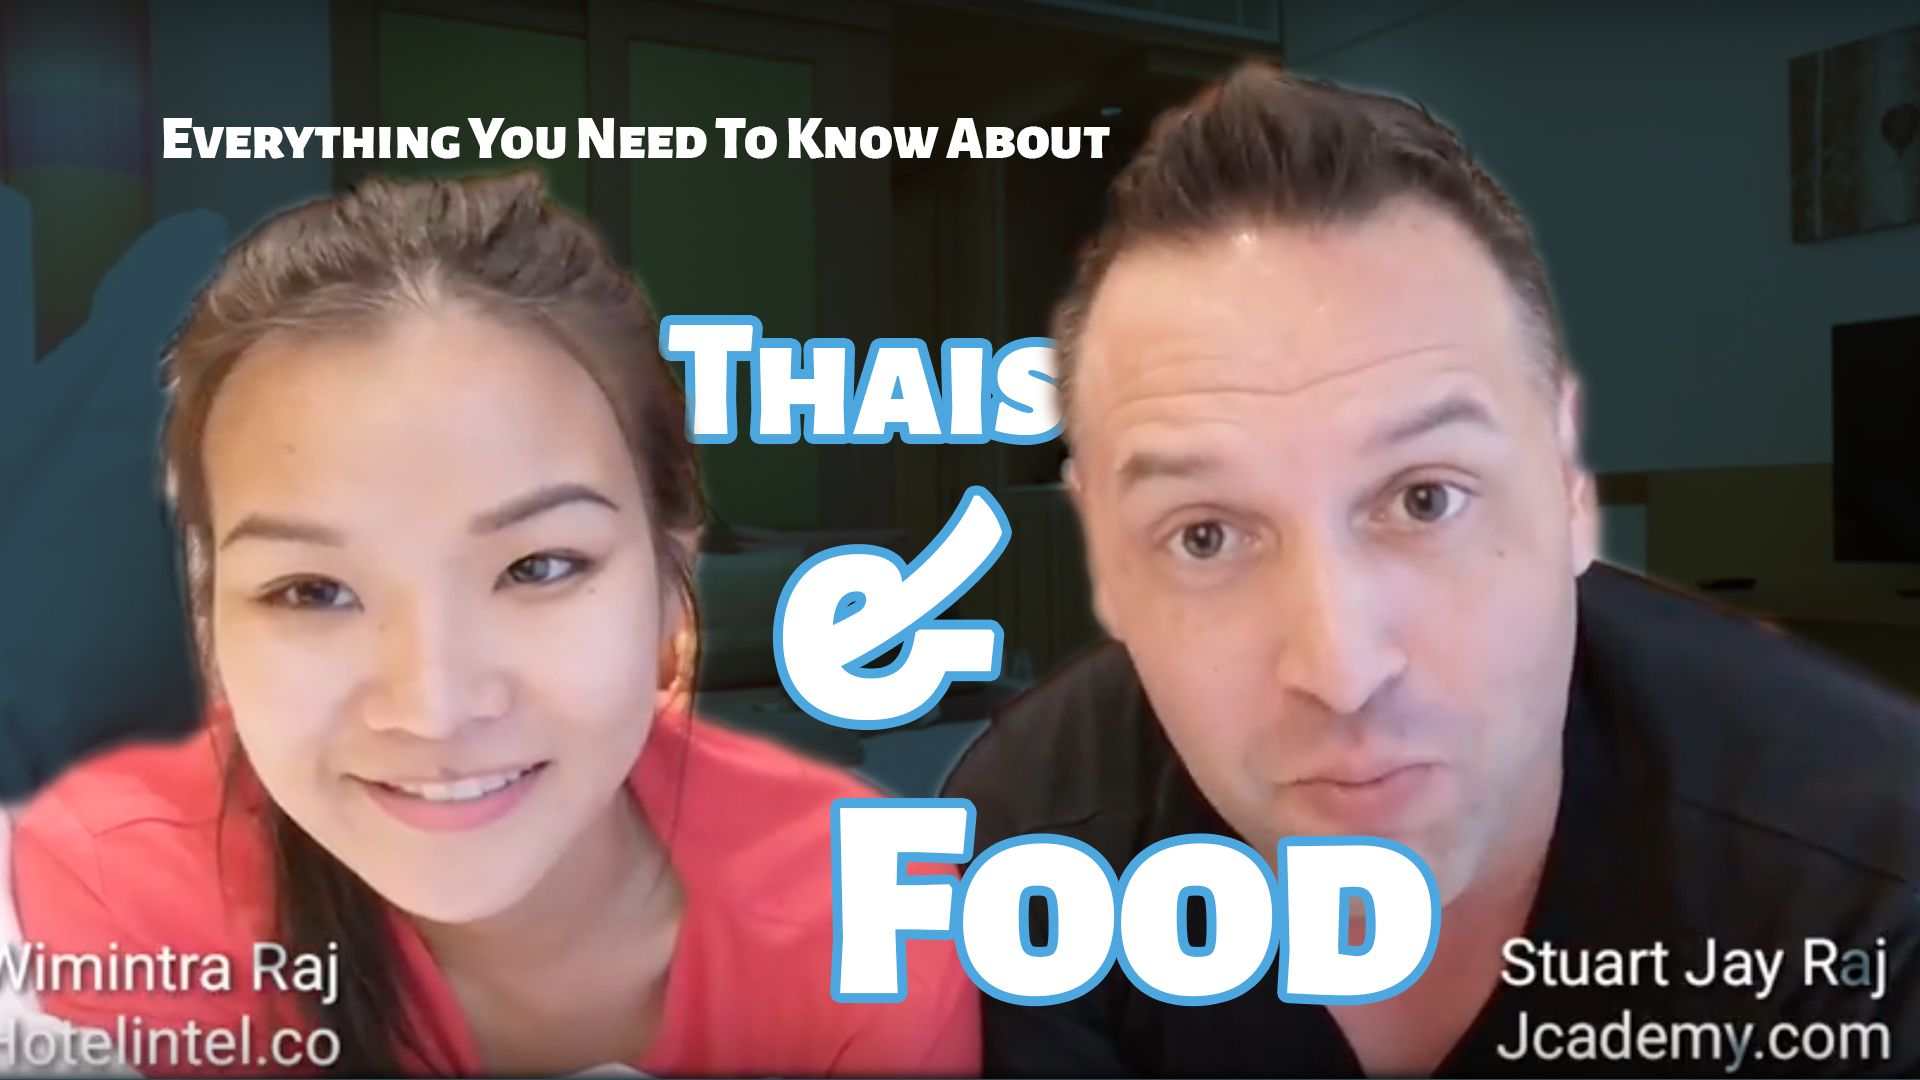 Thai Food and Thais - Everything You Need To Know